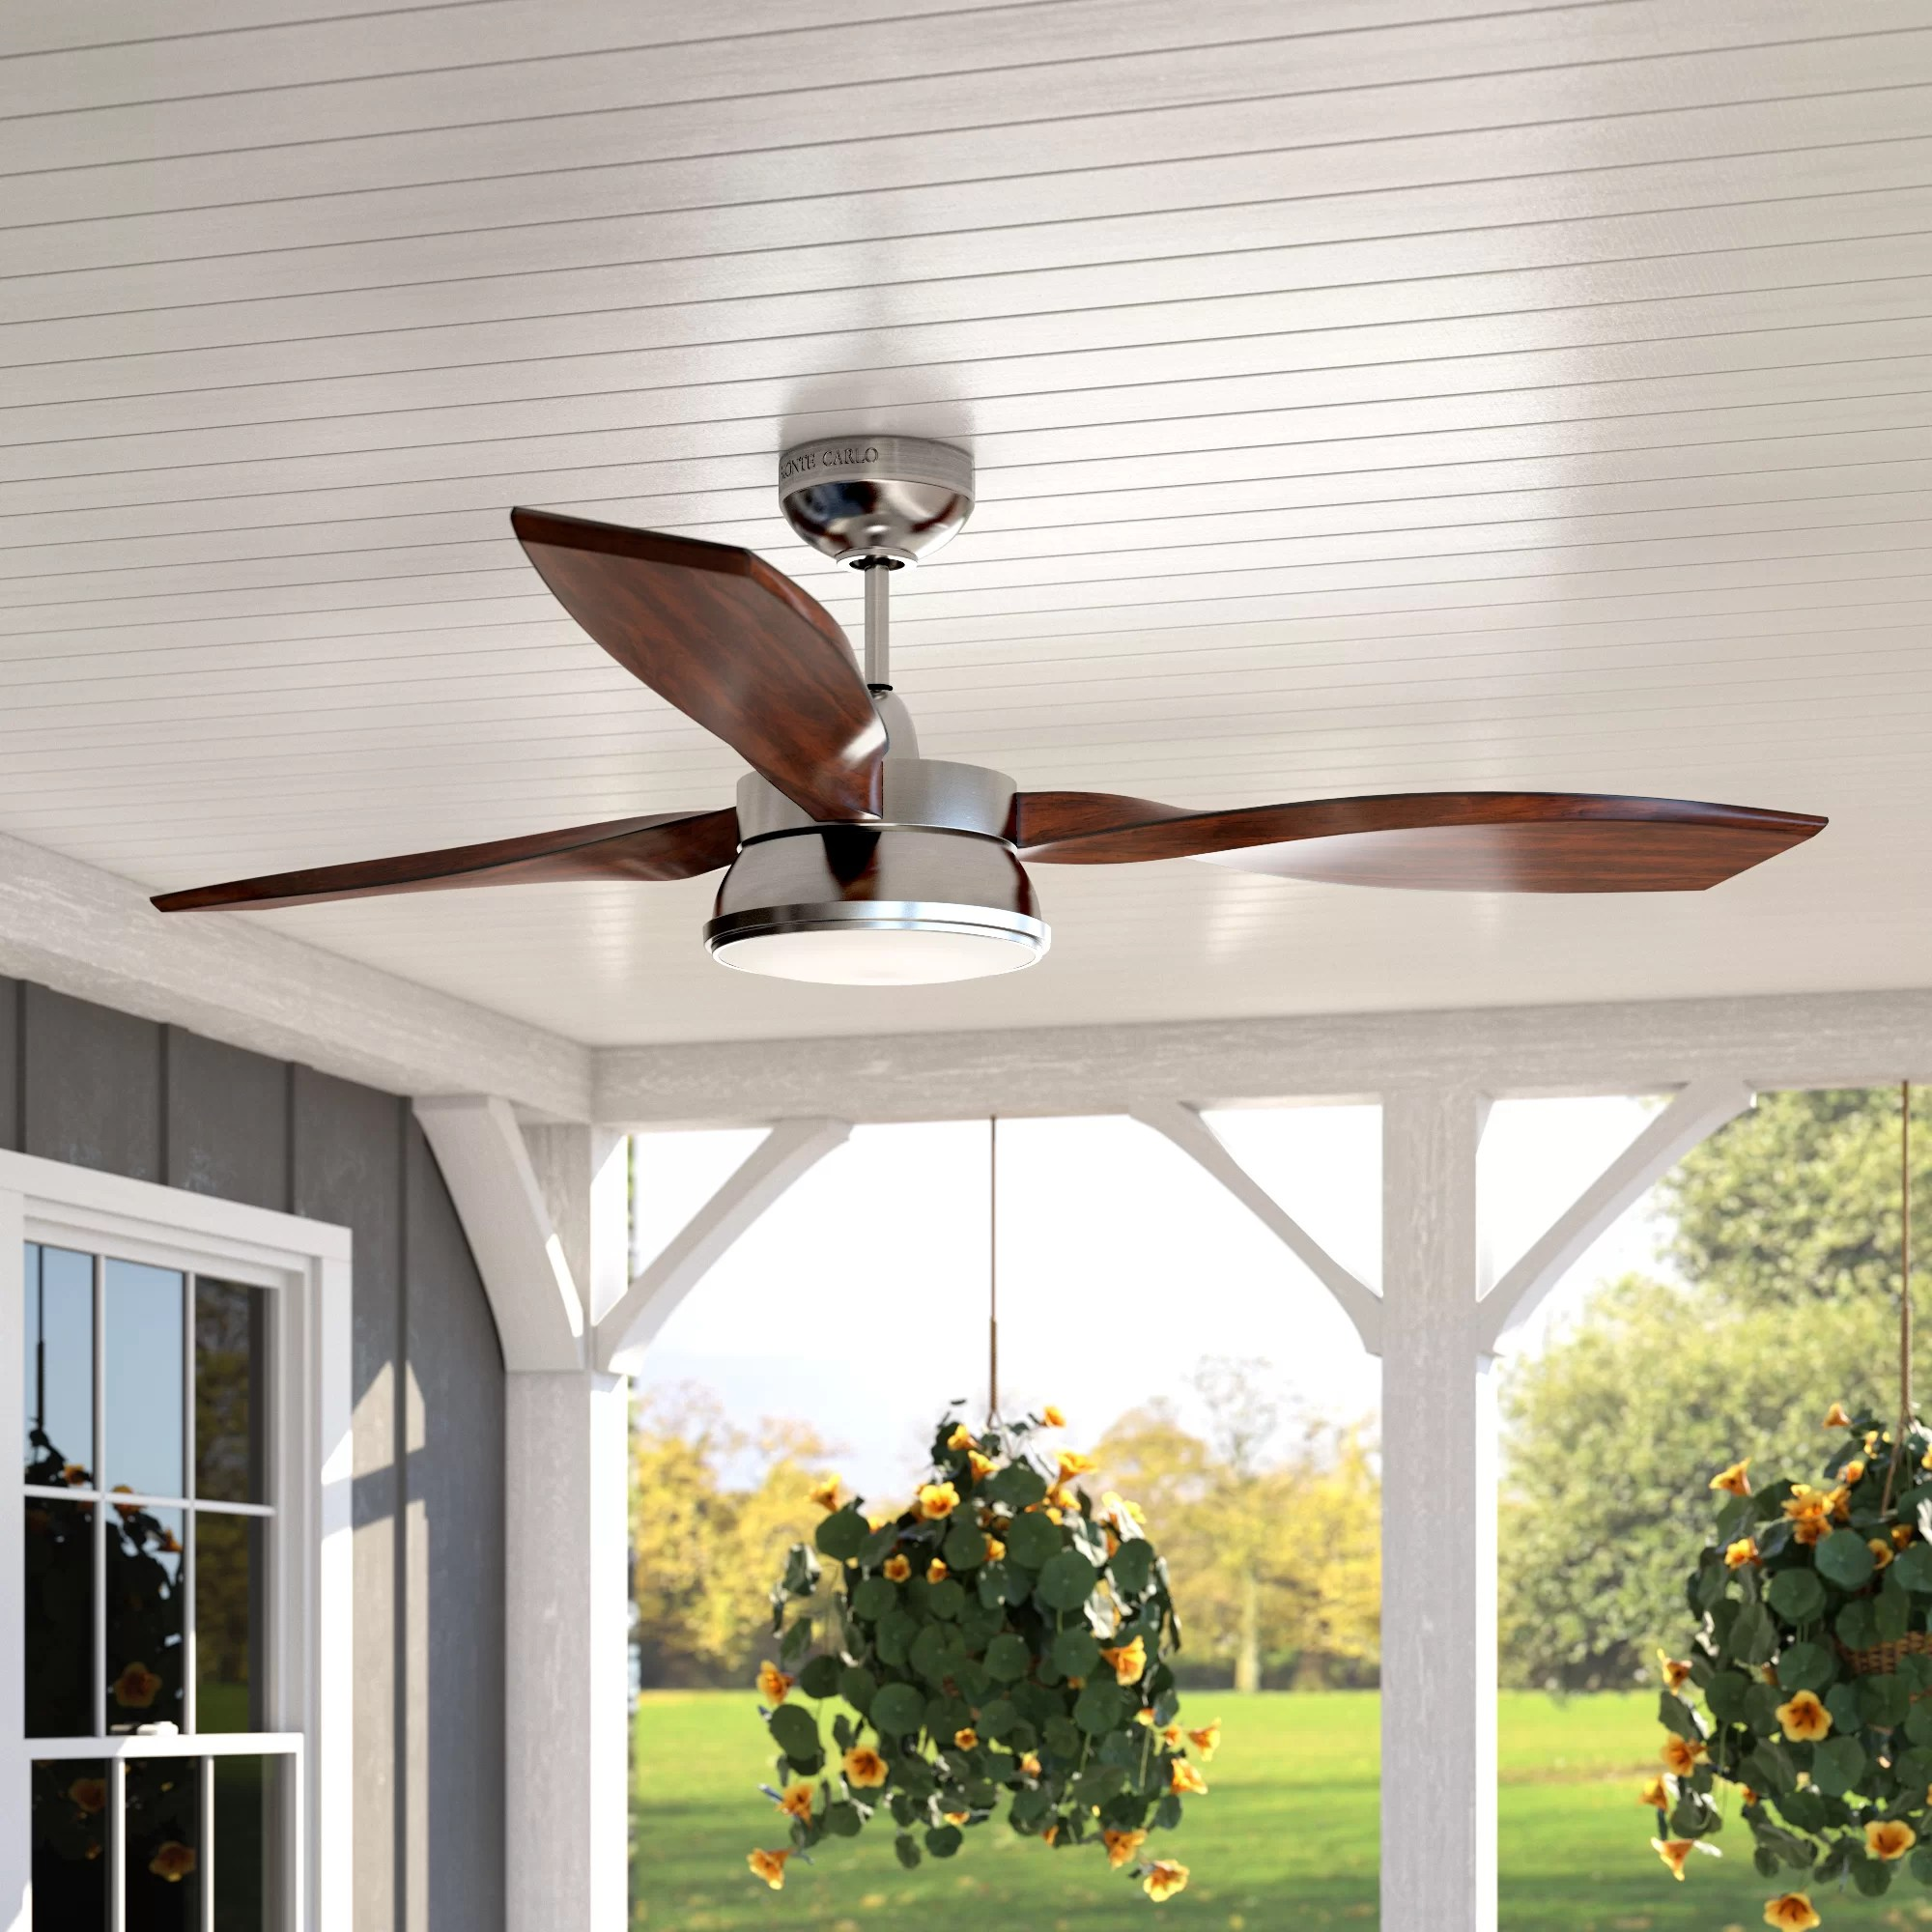 Laurel Foundry Modern Farmhouse 57 Fougeres 3 Blade Standard Ceiling Fan With Remote Control And Light Kit Included Reviews Wayfair